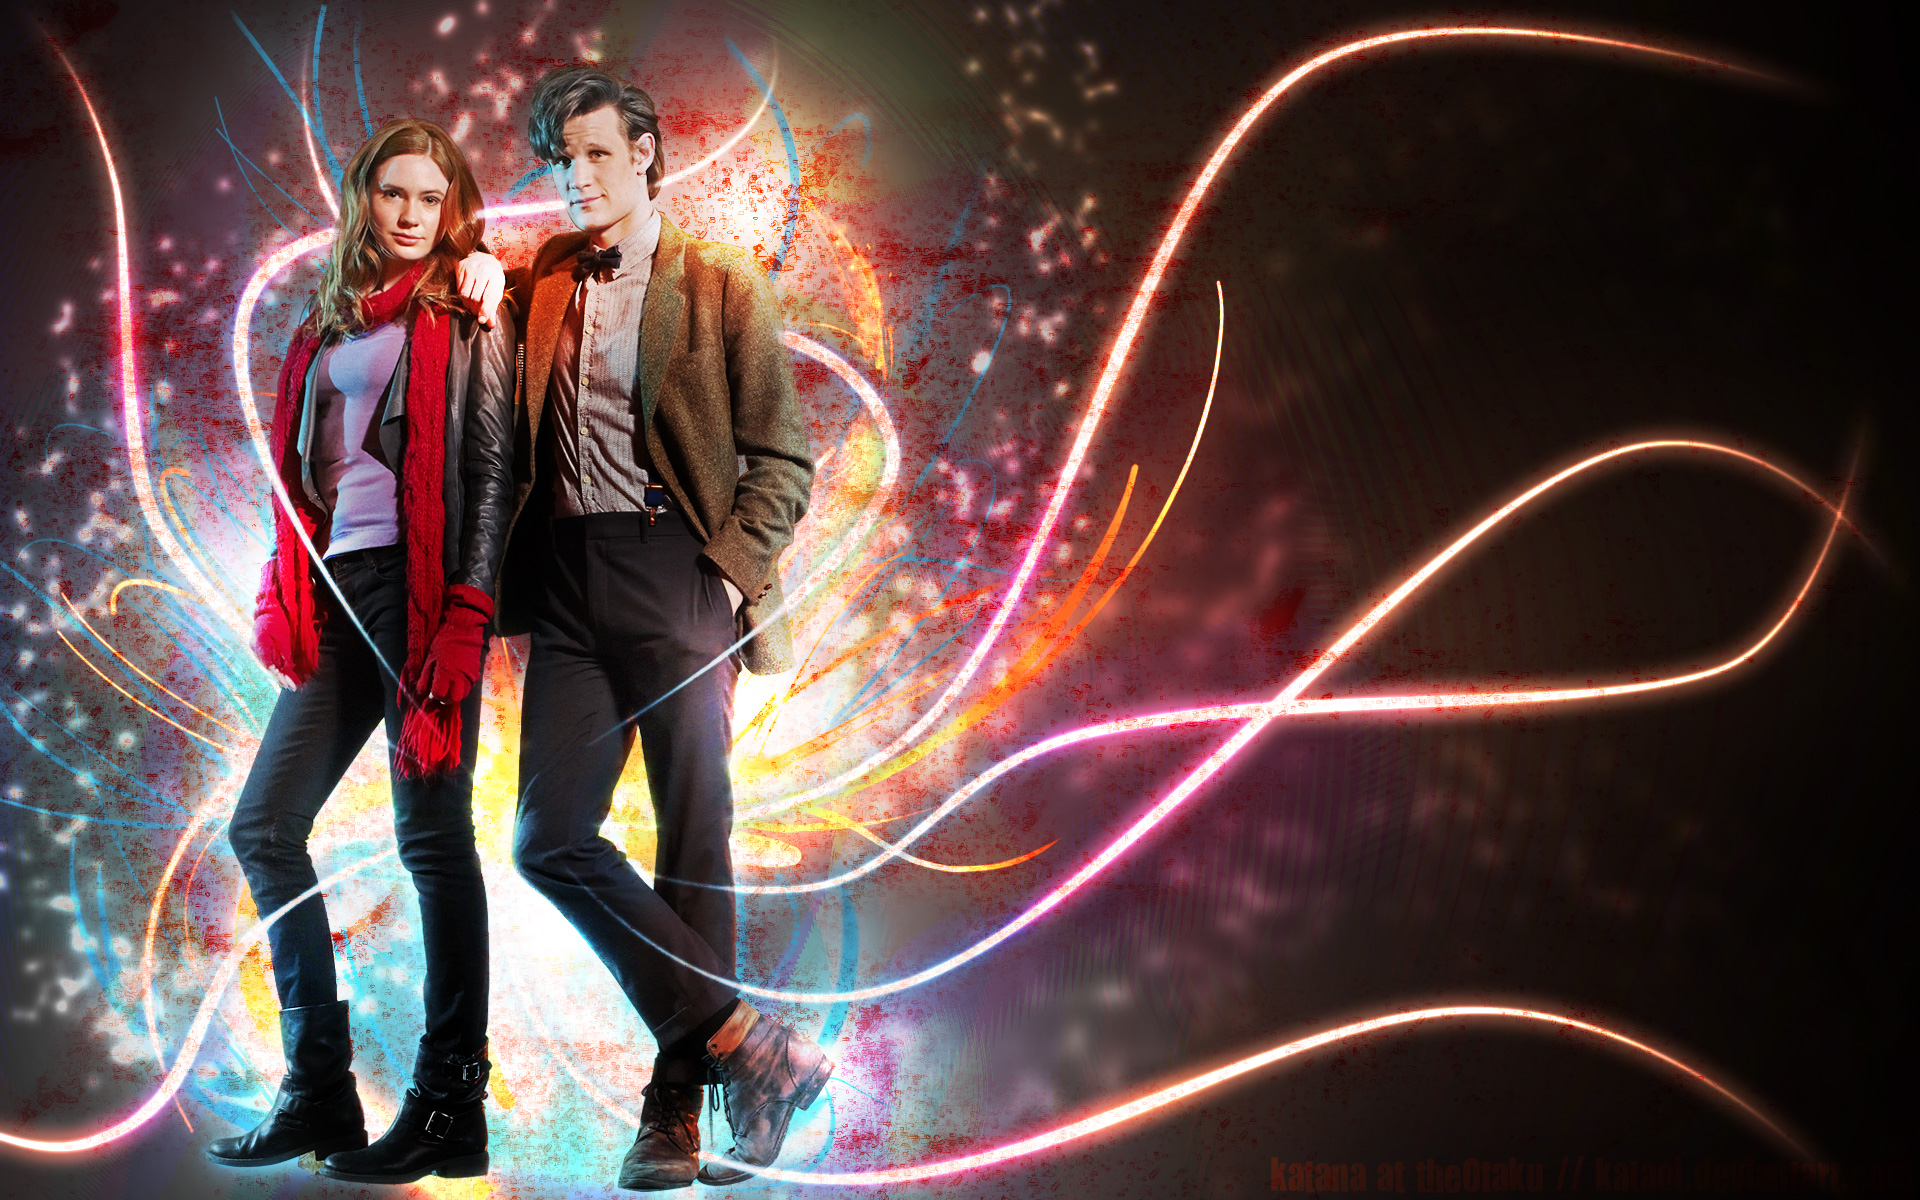 Matt Smith Eleventh Doctor Doctor Who Free Wallpaper